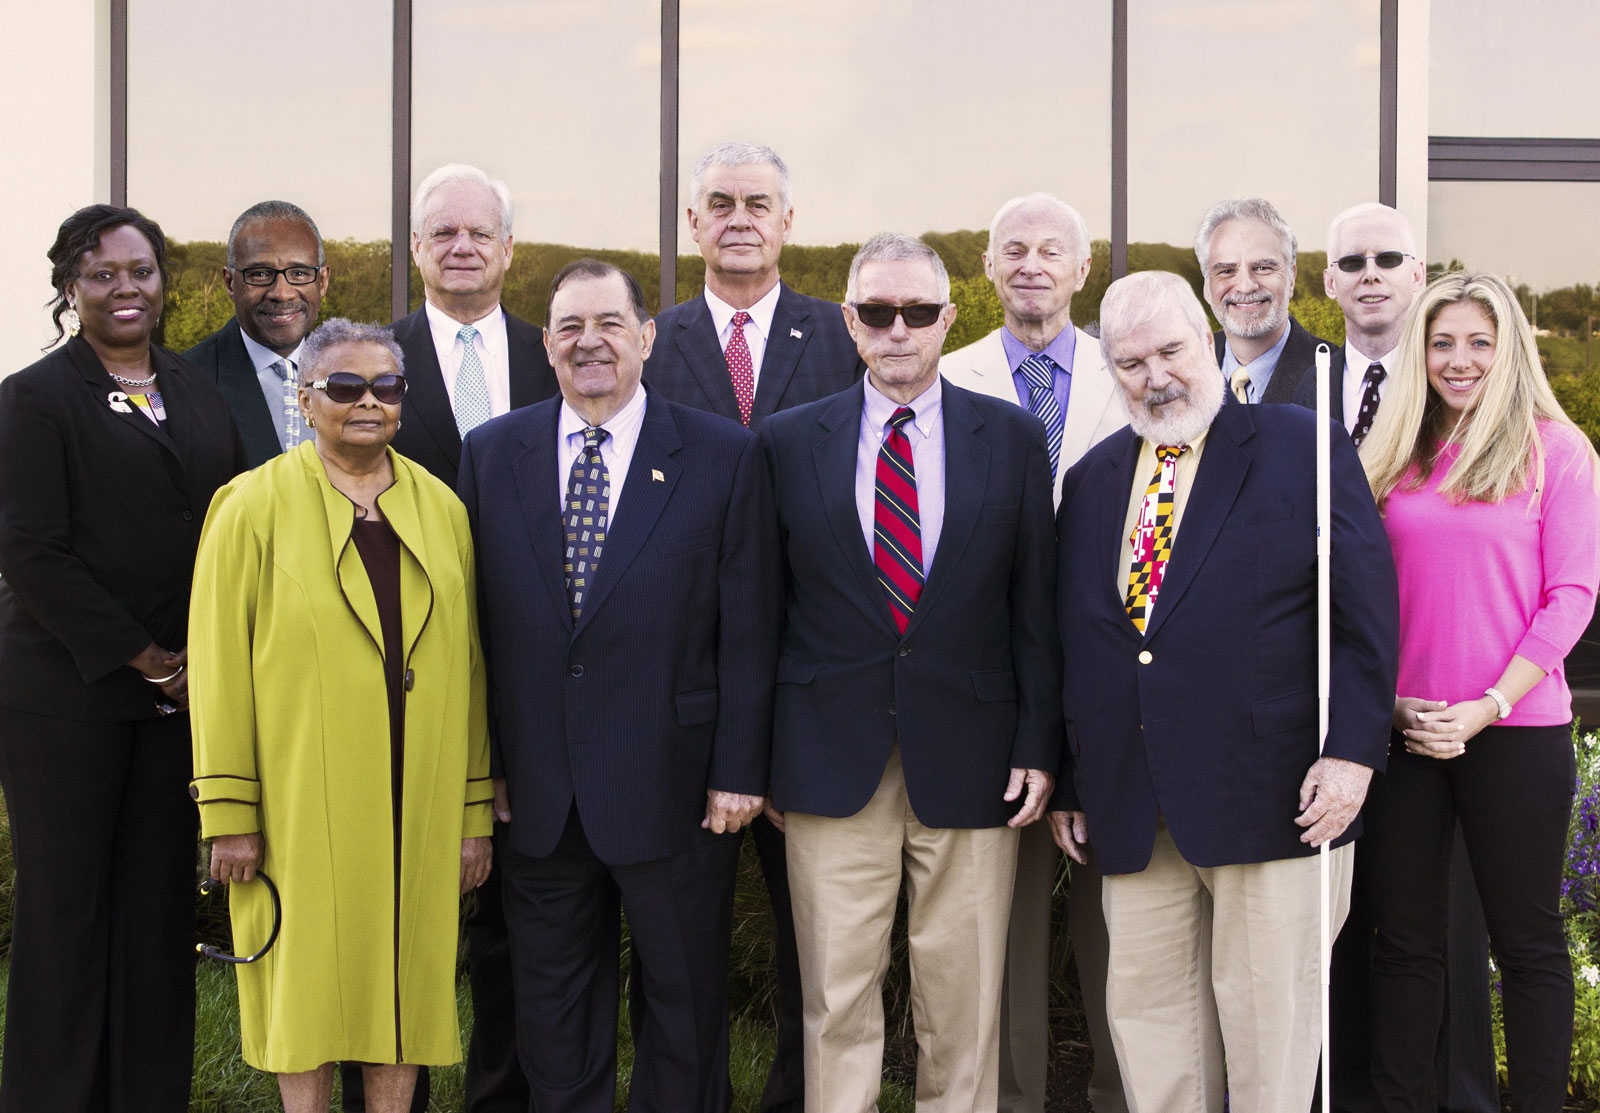 BISM Board of Trustees group photo